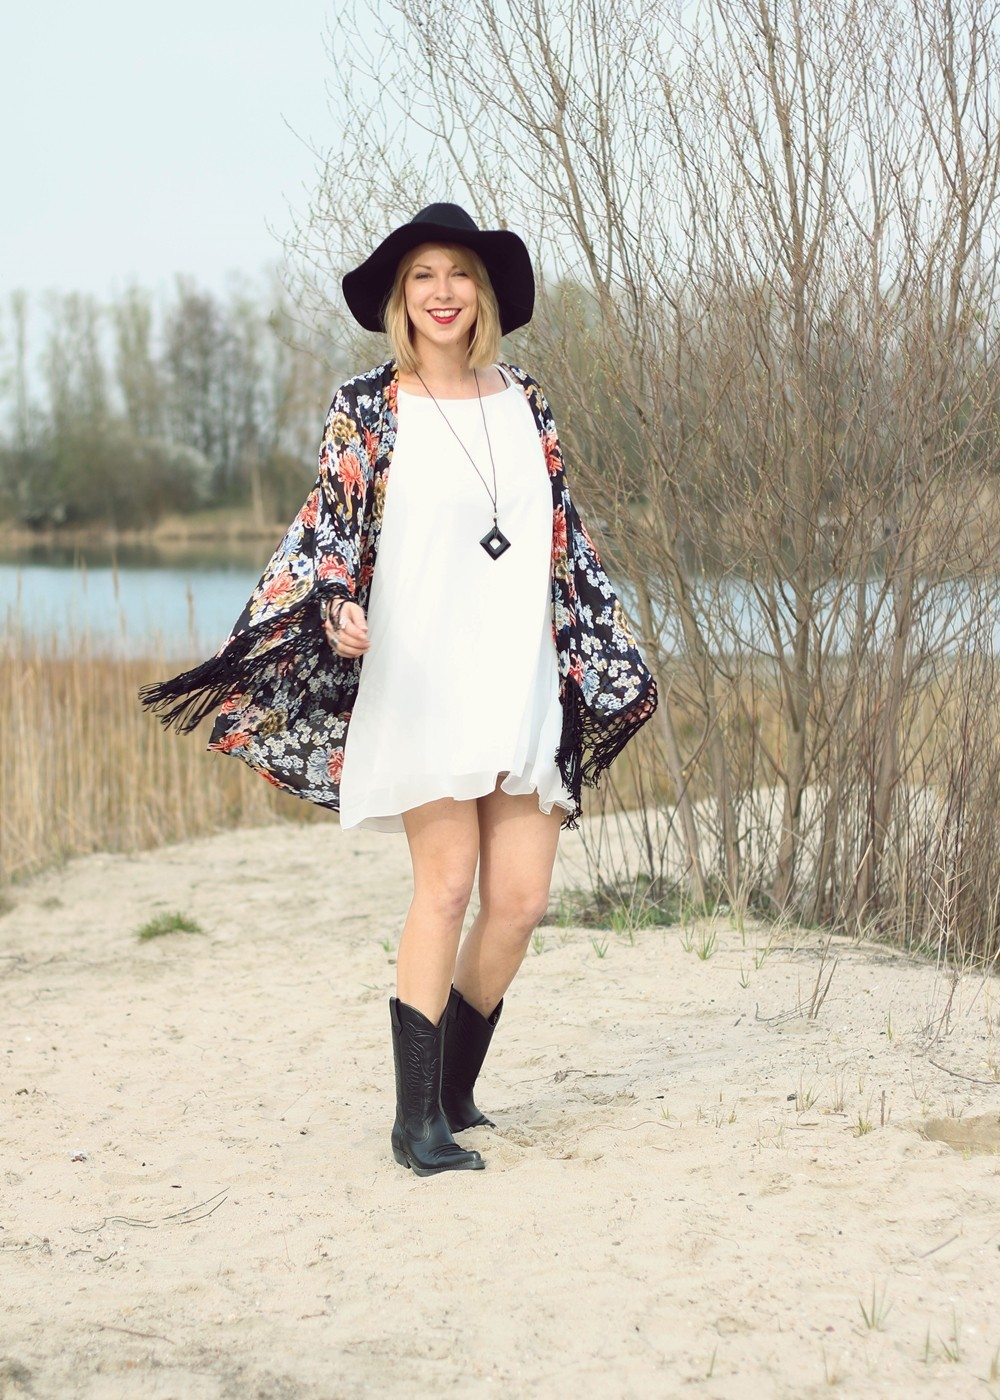 Fashionblogger Outfit Kimono weisses Kleid Cowboystiefel Schlapphut (5)